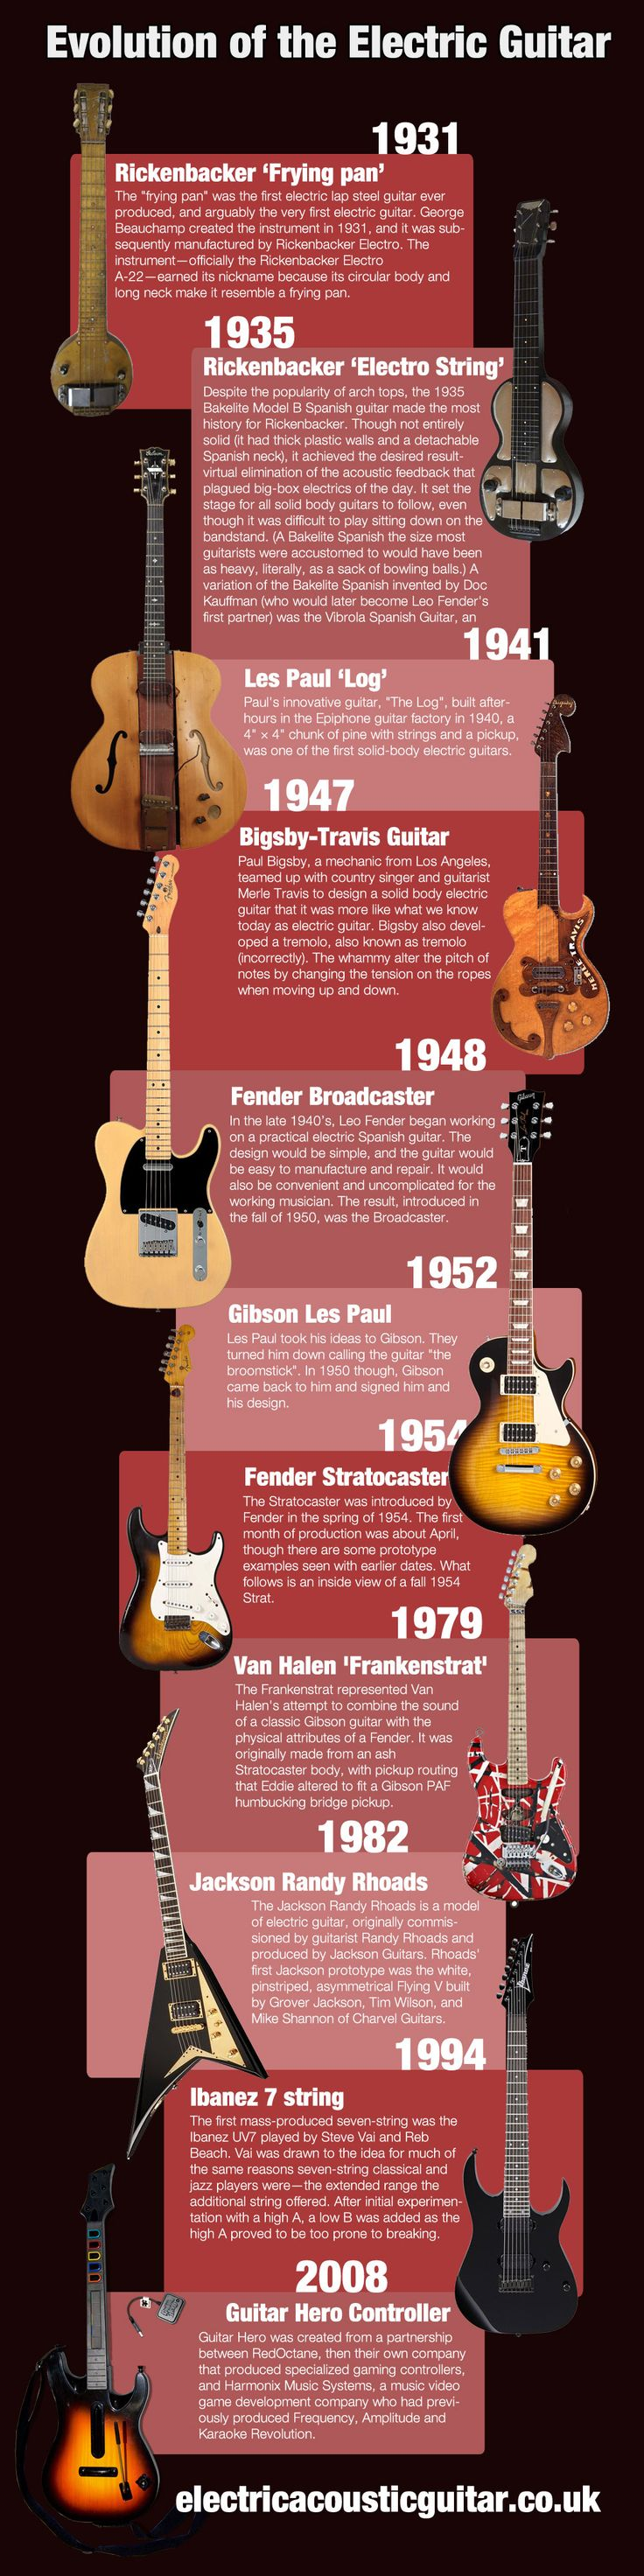 How the Guitar has evolved over the last 80 odd years from the frying pan guitar to the Ibanez Uv7 string guitar